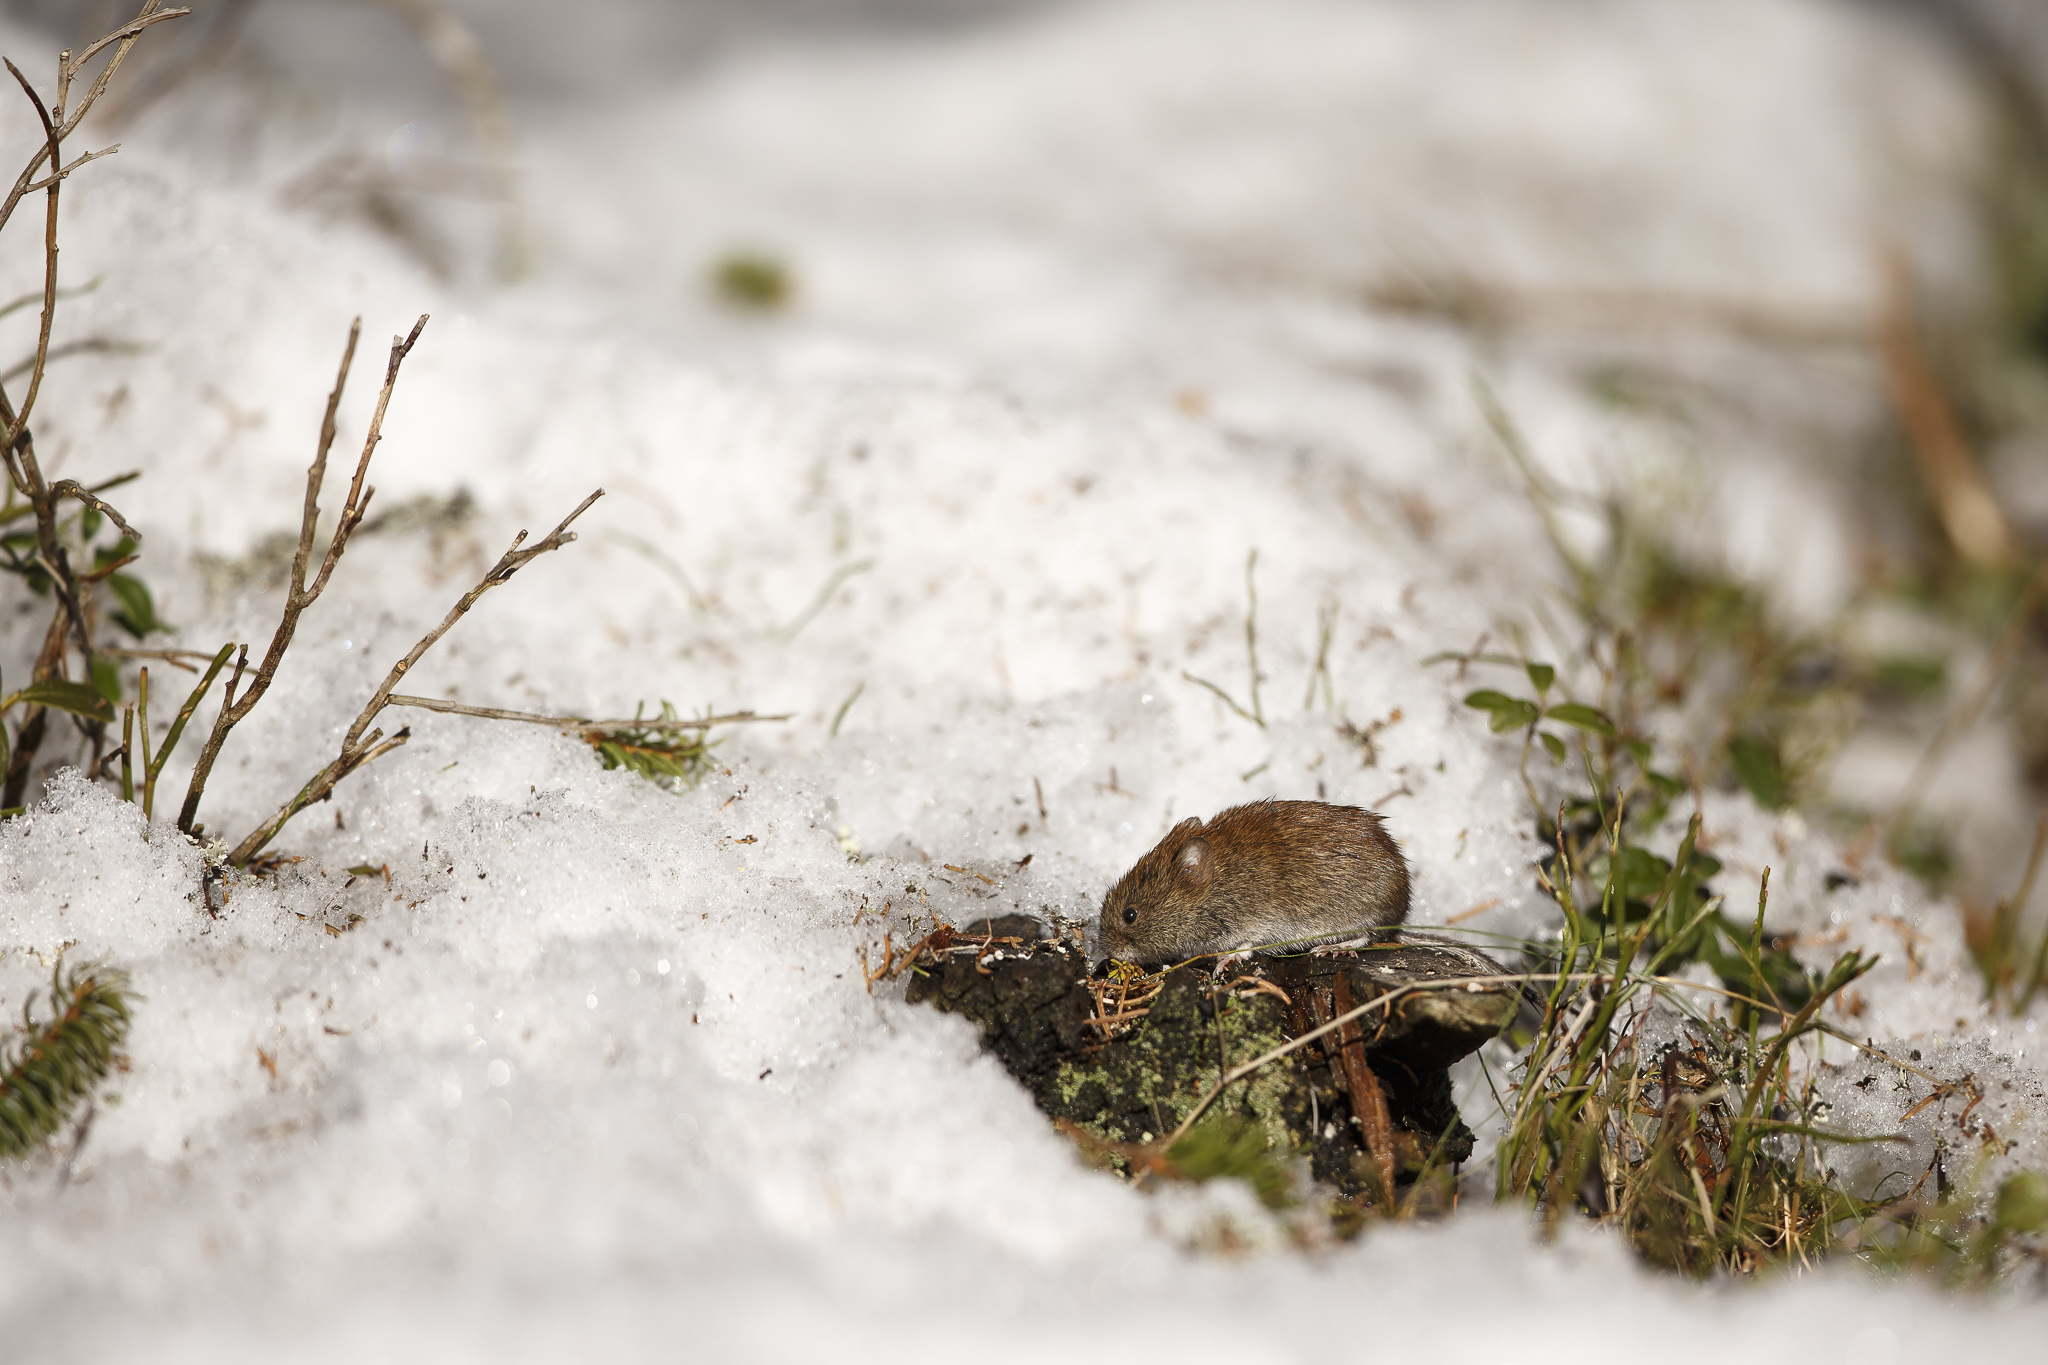 Canon 1dx, 300 f/2.8 is II @f/2.8. ISO 100. Forest vole